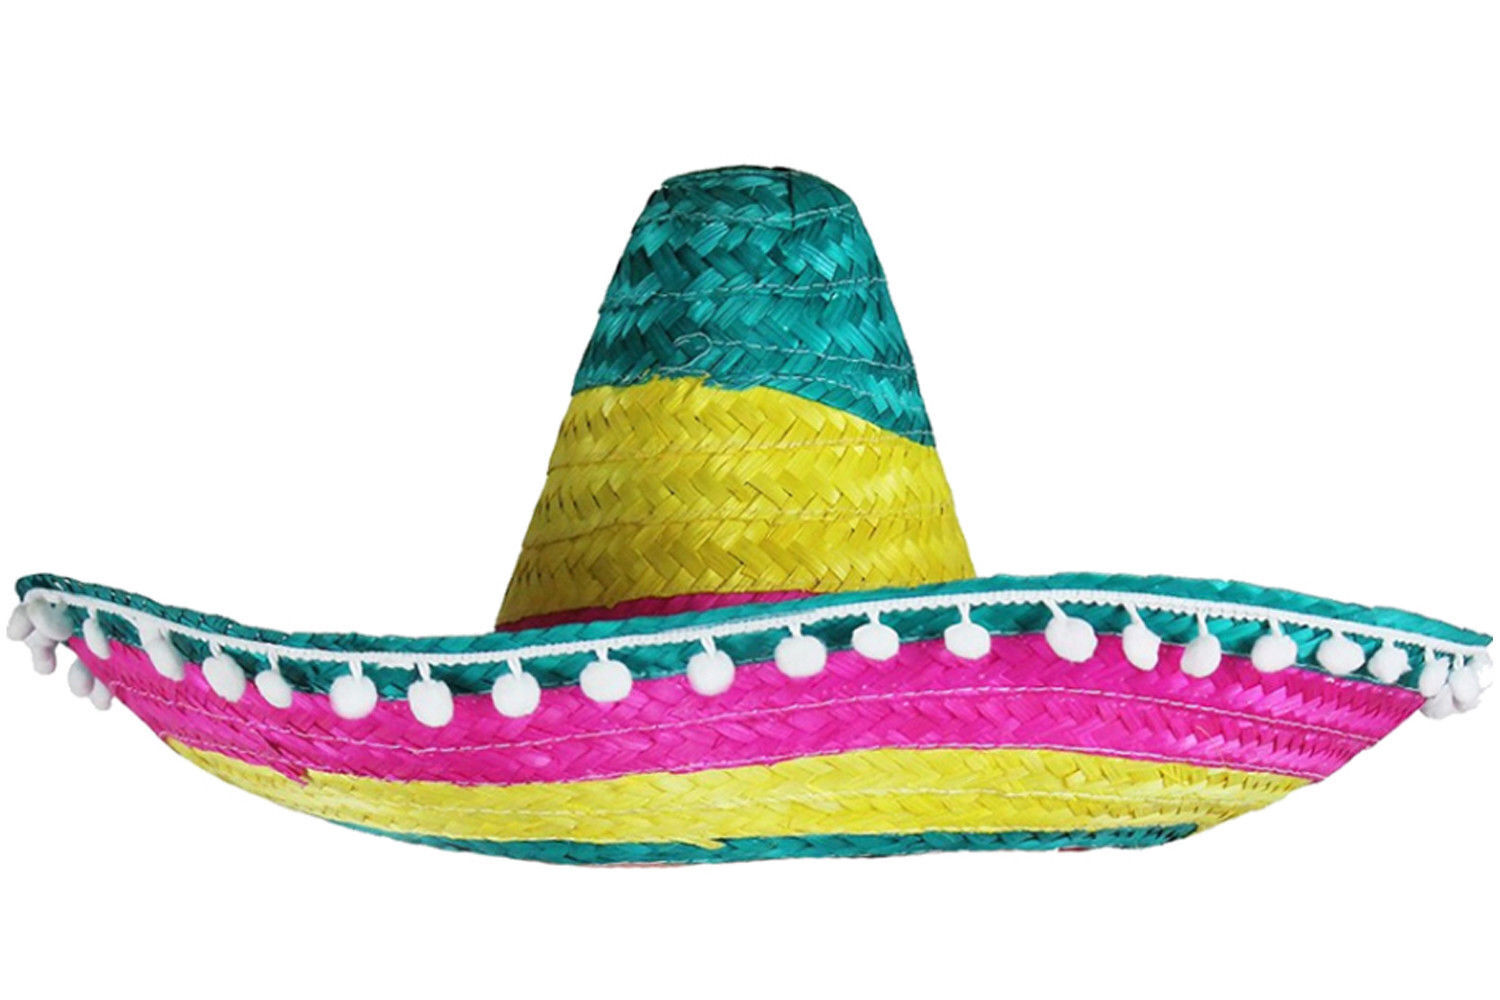 35700656c71 Details about MULTI COLOURED MEXICAN SOMBRERO HAT WILD WESTERN FANCY DRESS  COSTUME ACCESSORY